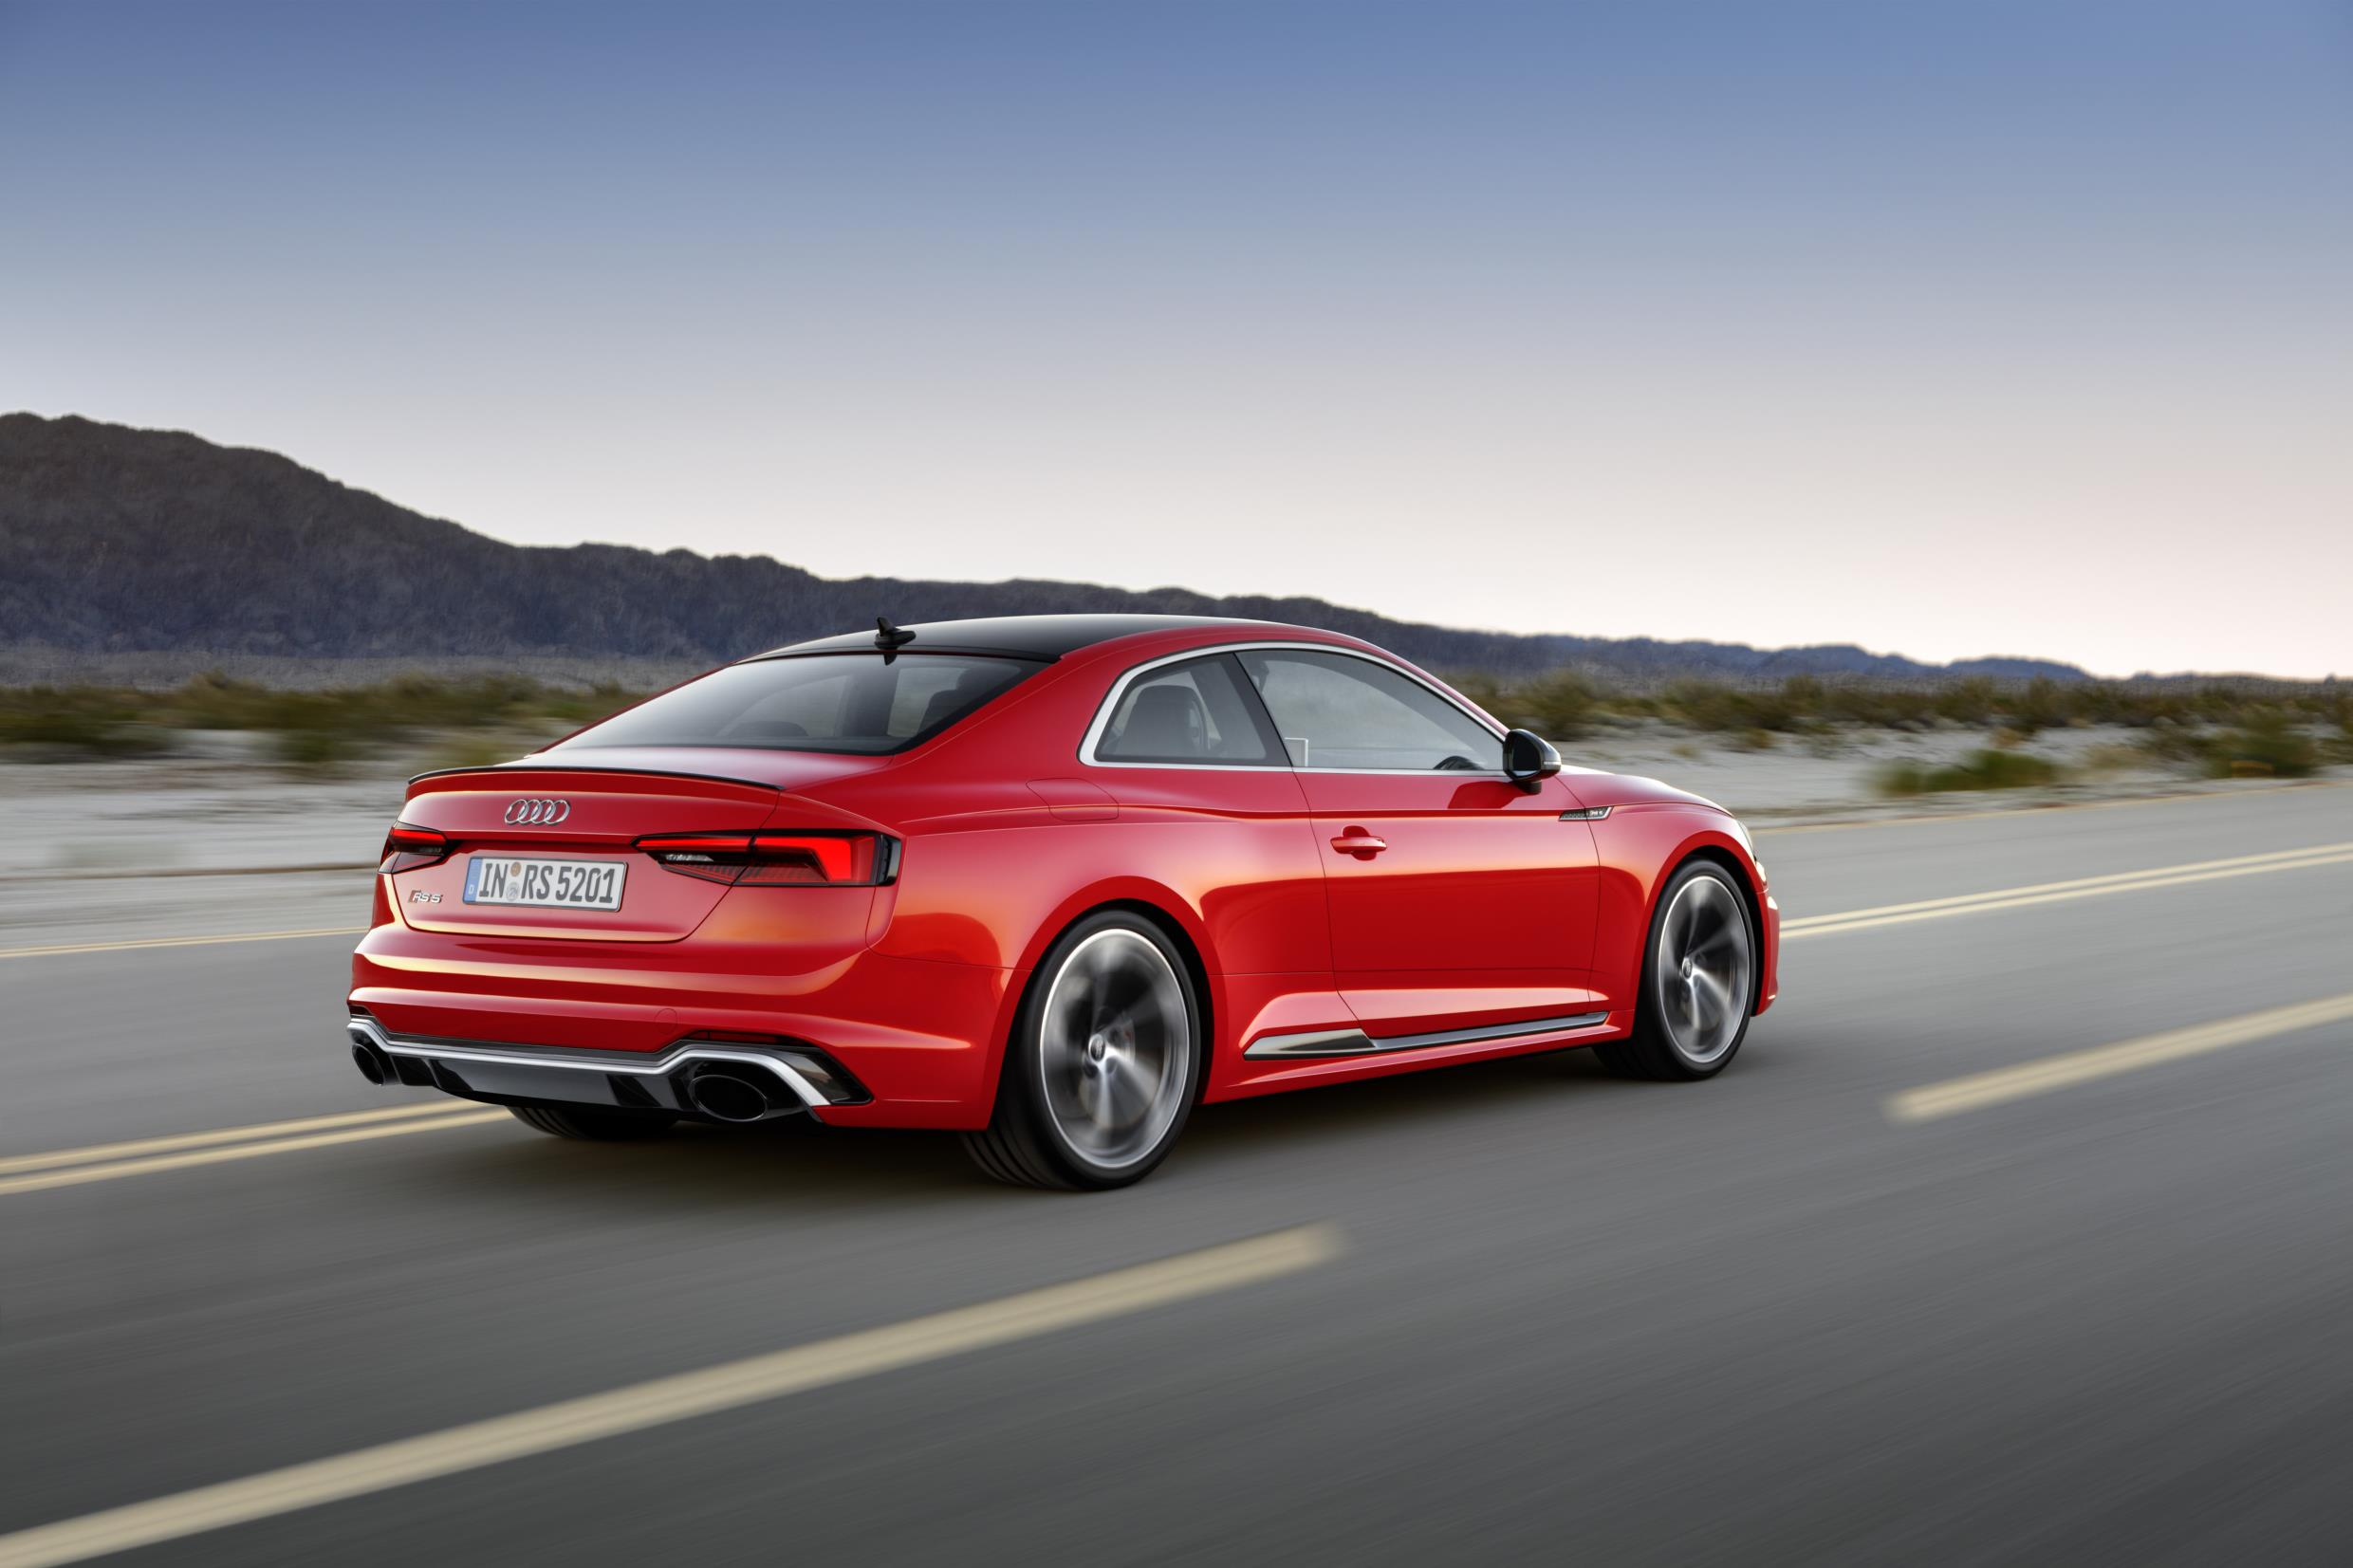 but fun cars price story audi entry gets pricey xxx money diesel test fast drive mpg